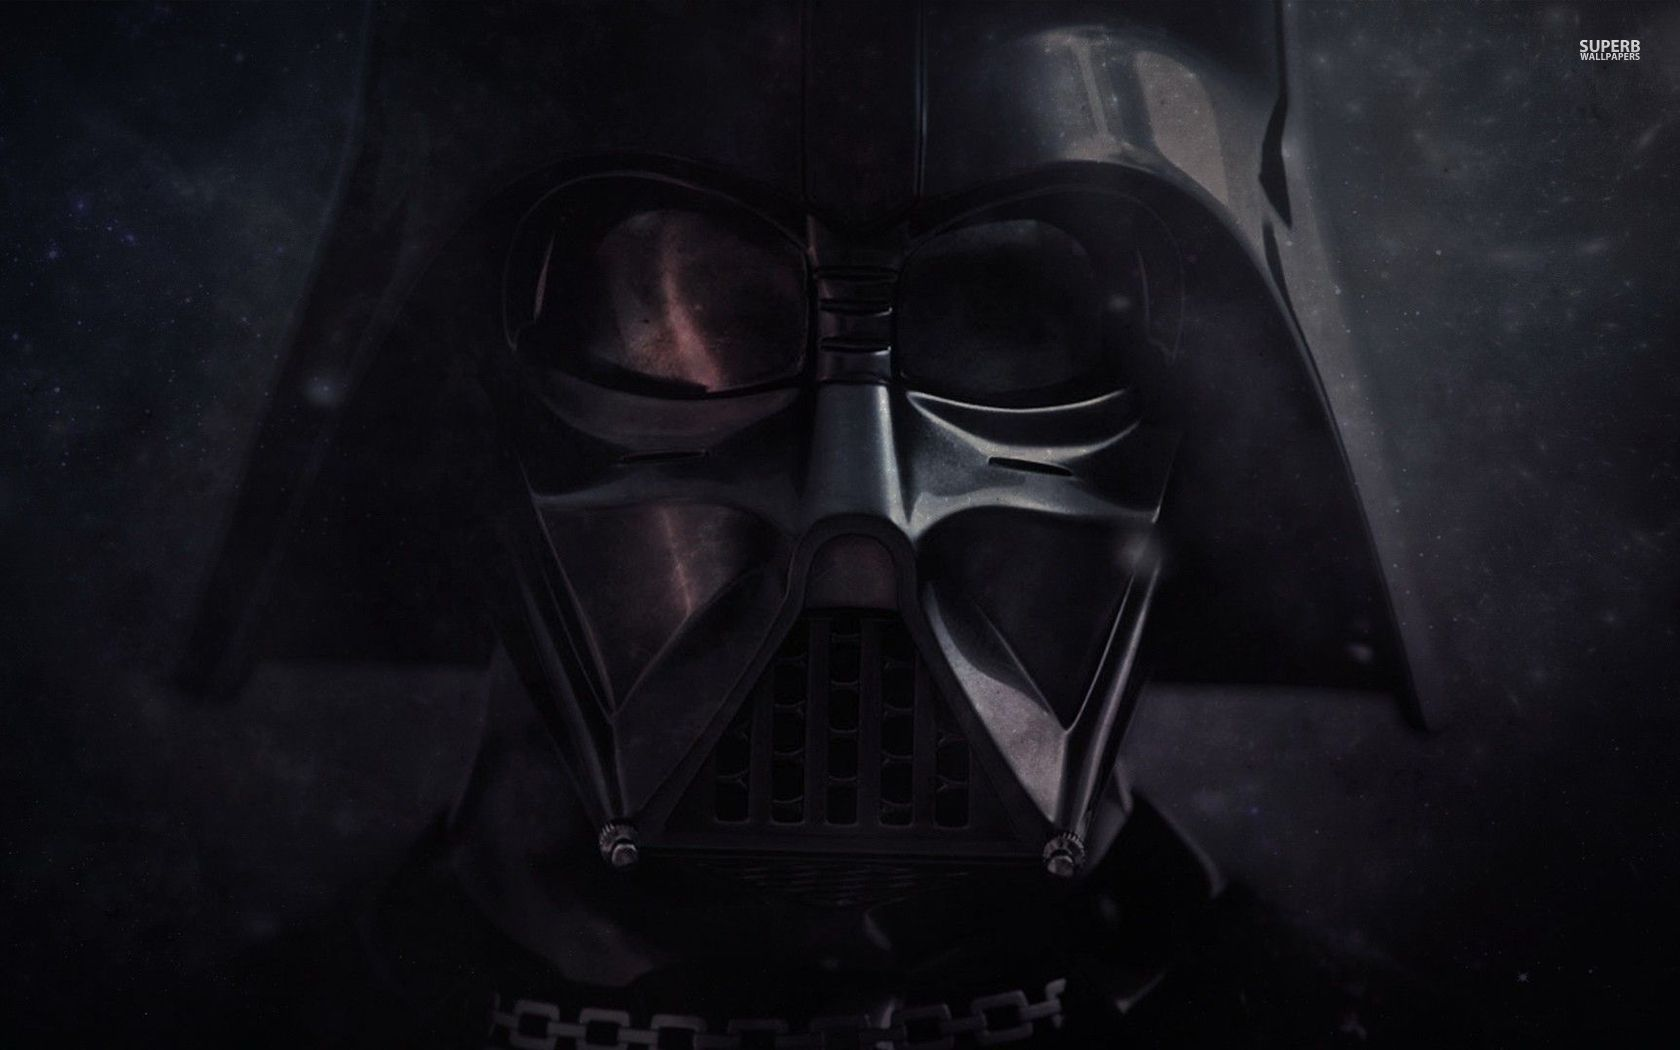 Darth Vader wallpaper 1680x1050